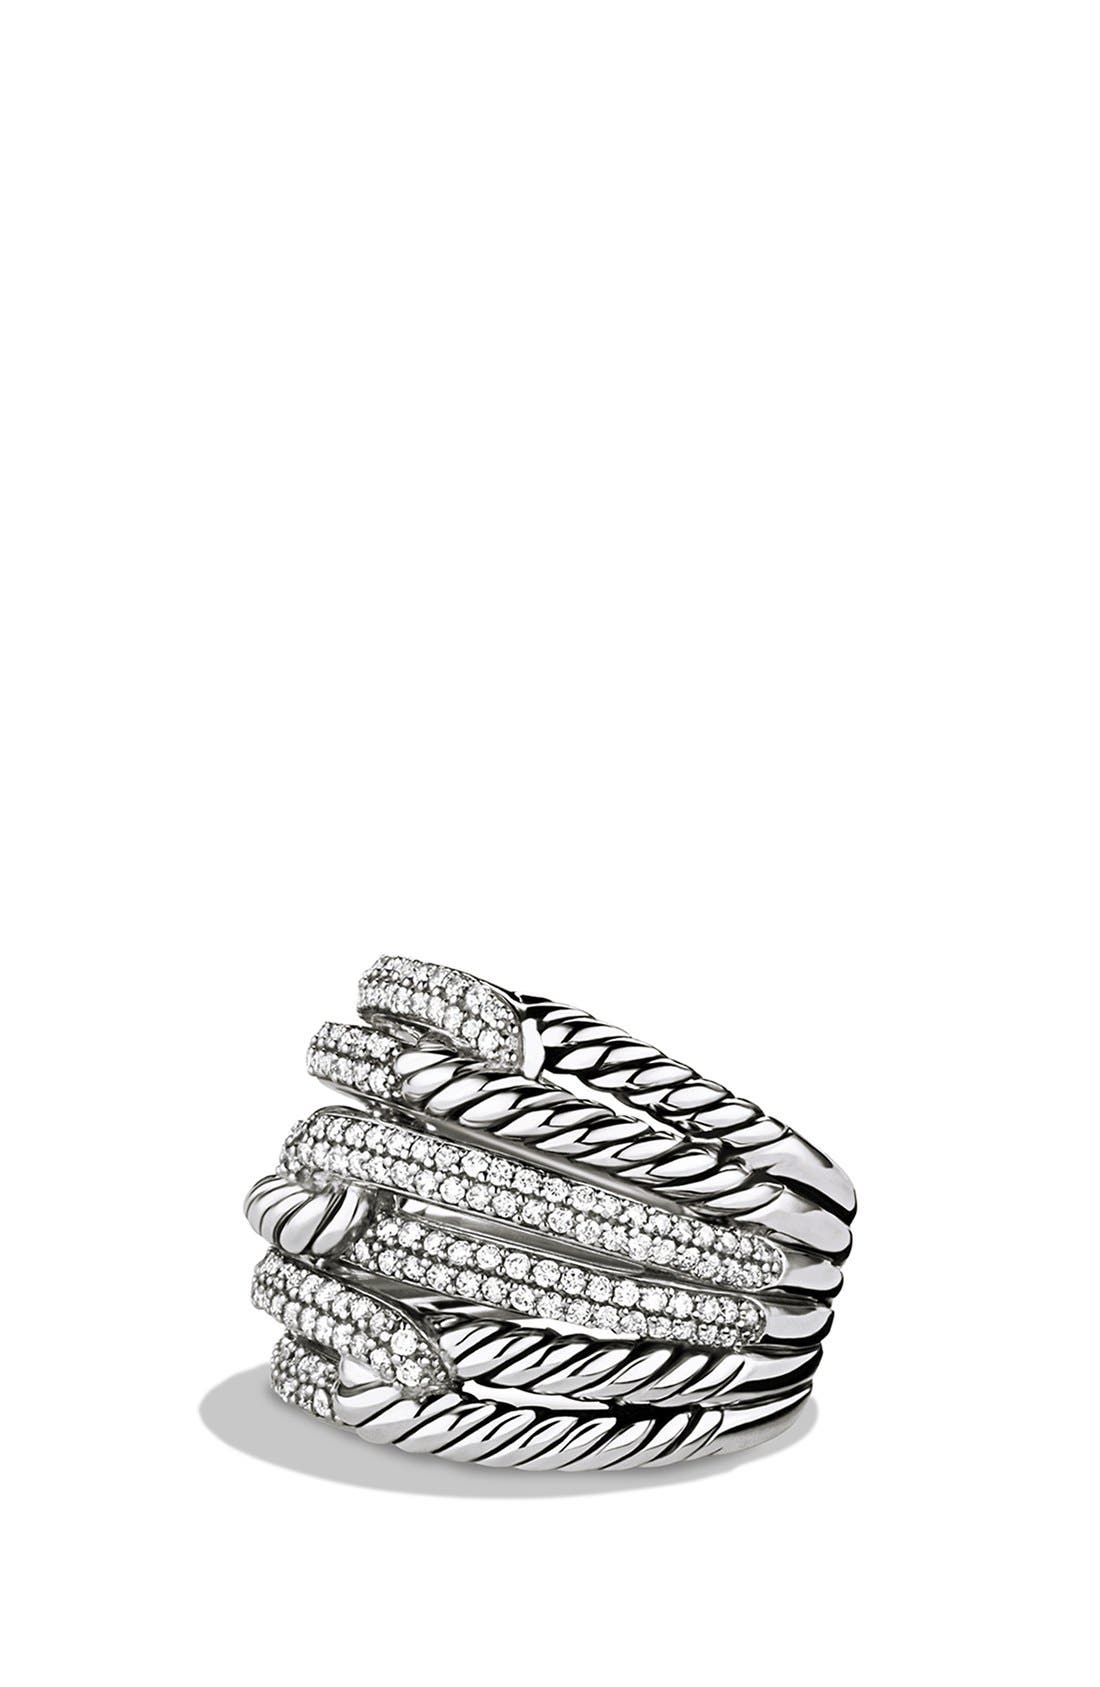 'Labyrinth' Triple-Loop Ring with Diamonds,                             Main thumbnail 1, color,                             DIAMOND